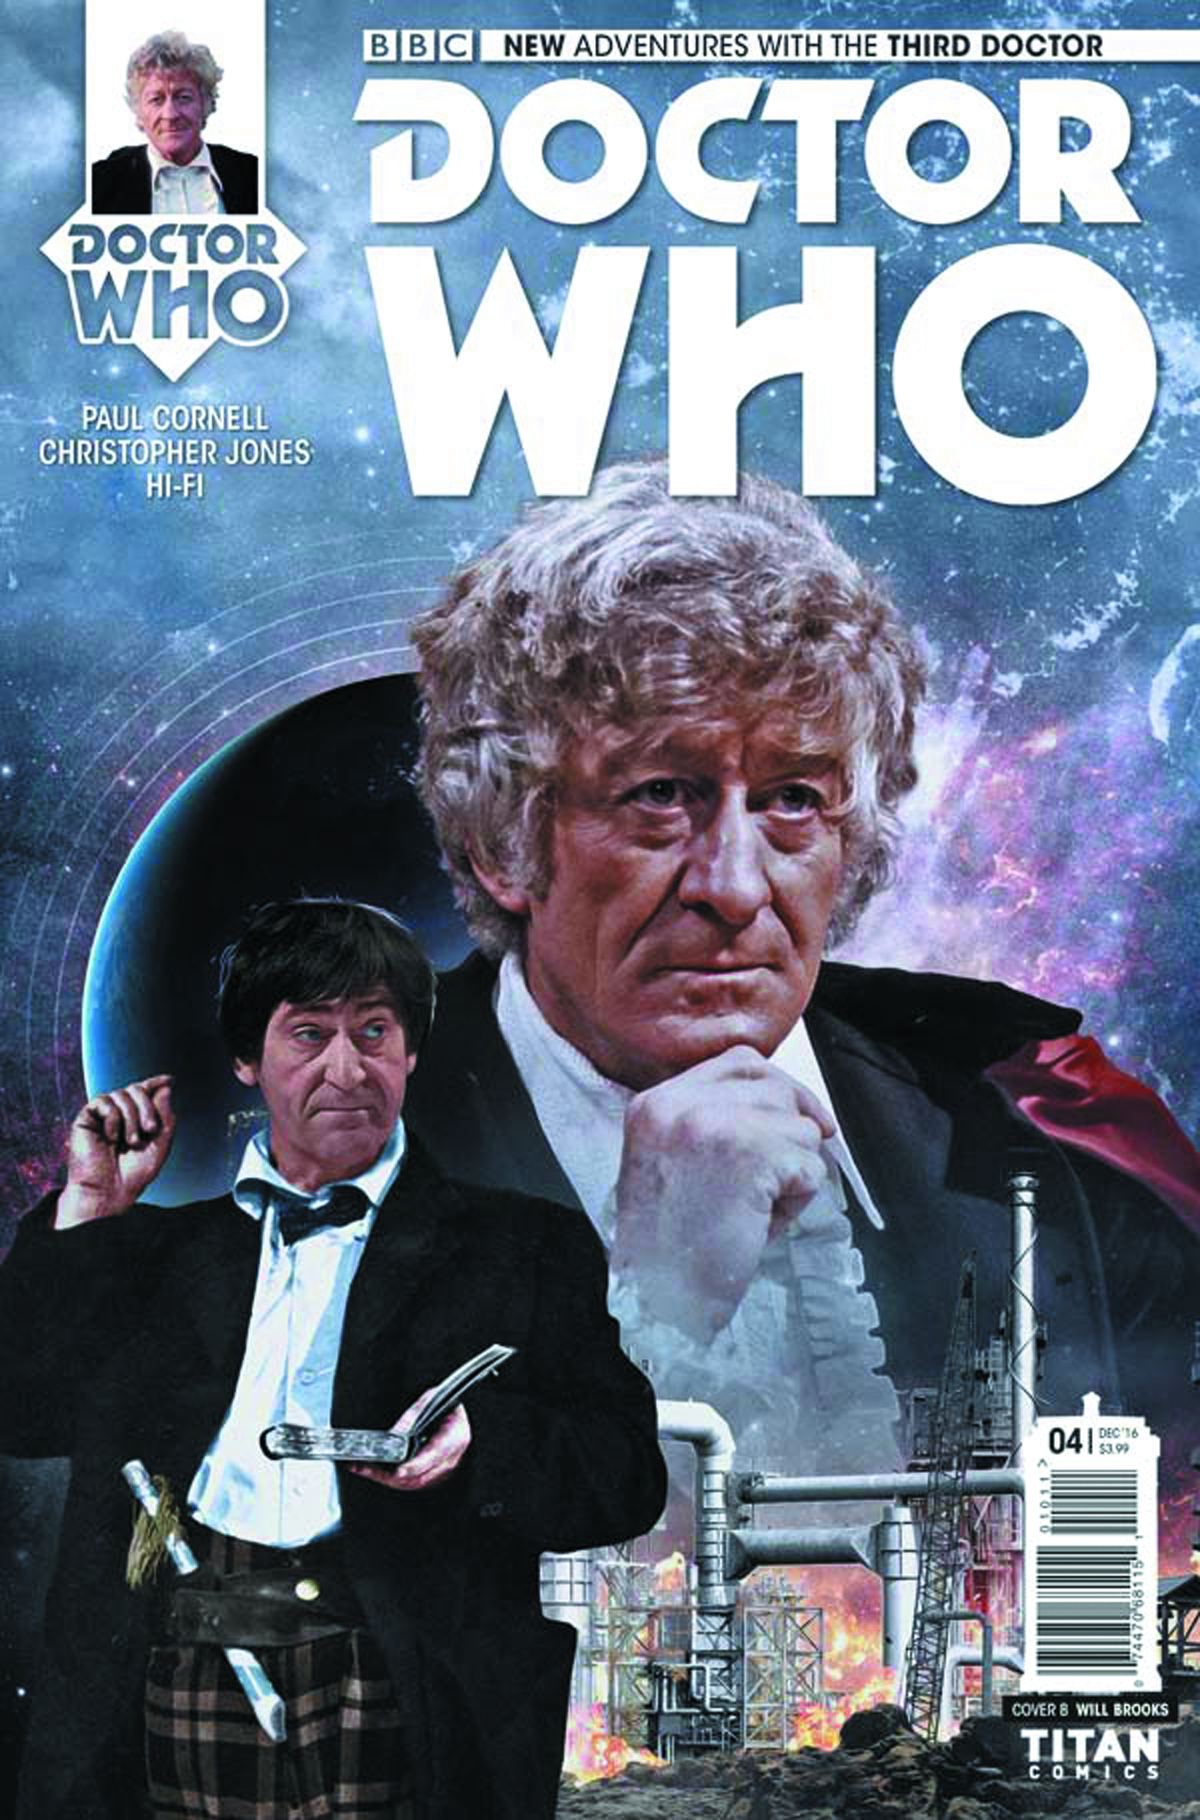 DOCTOR WHO 3RD #4 (OF 5) CVR B PHOTO